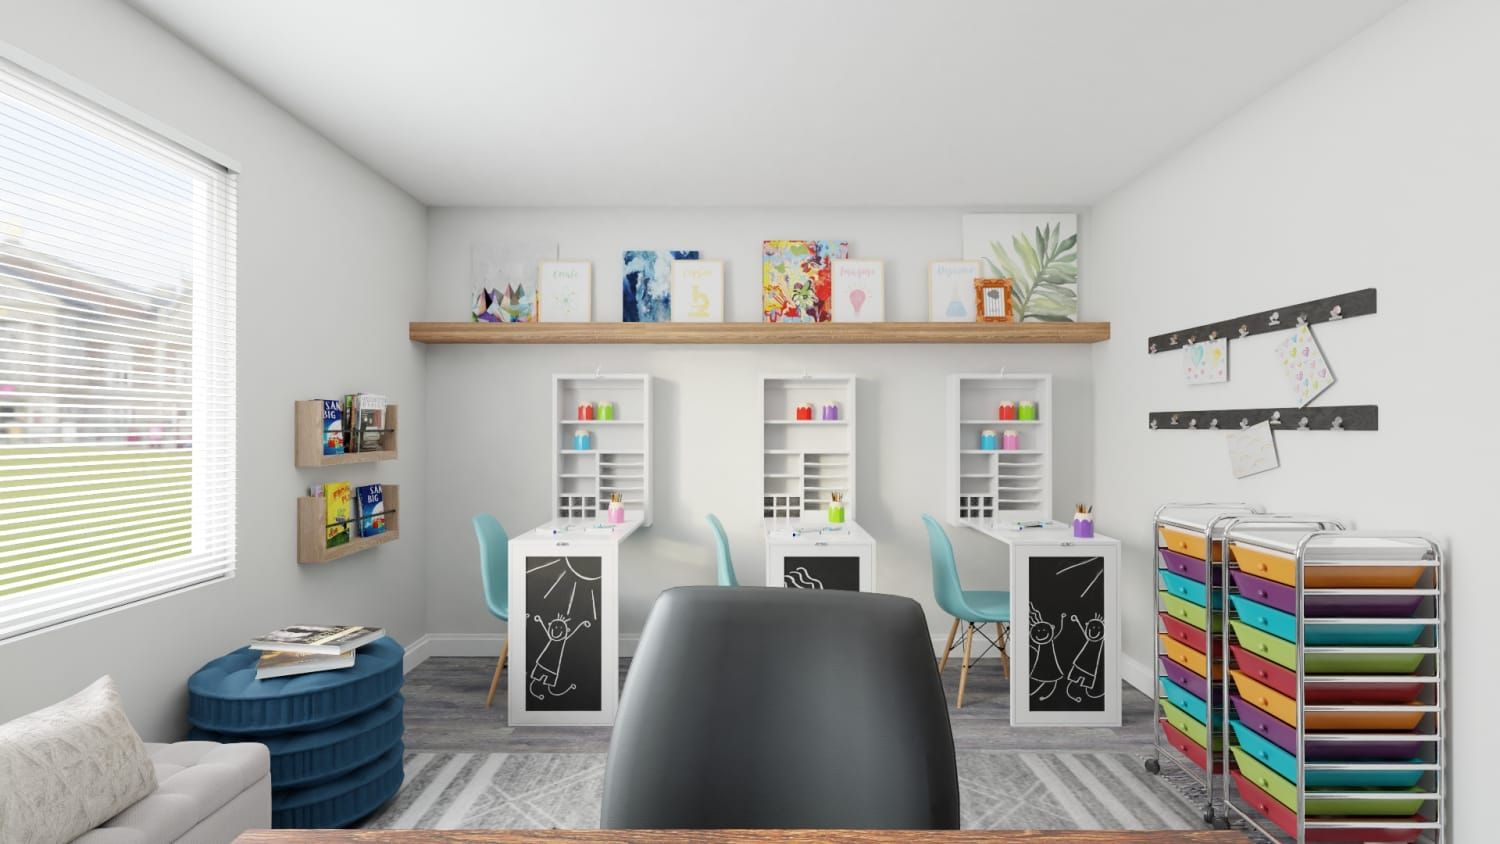 Home Office Study Room Design For The Entire Family By Spacejoy